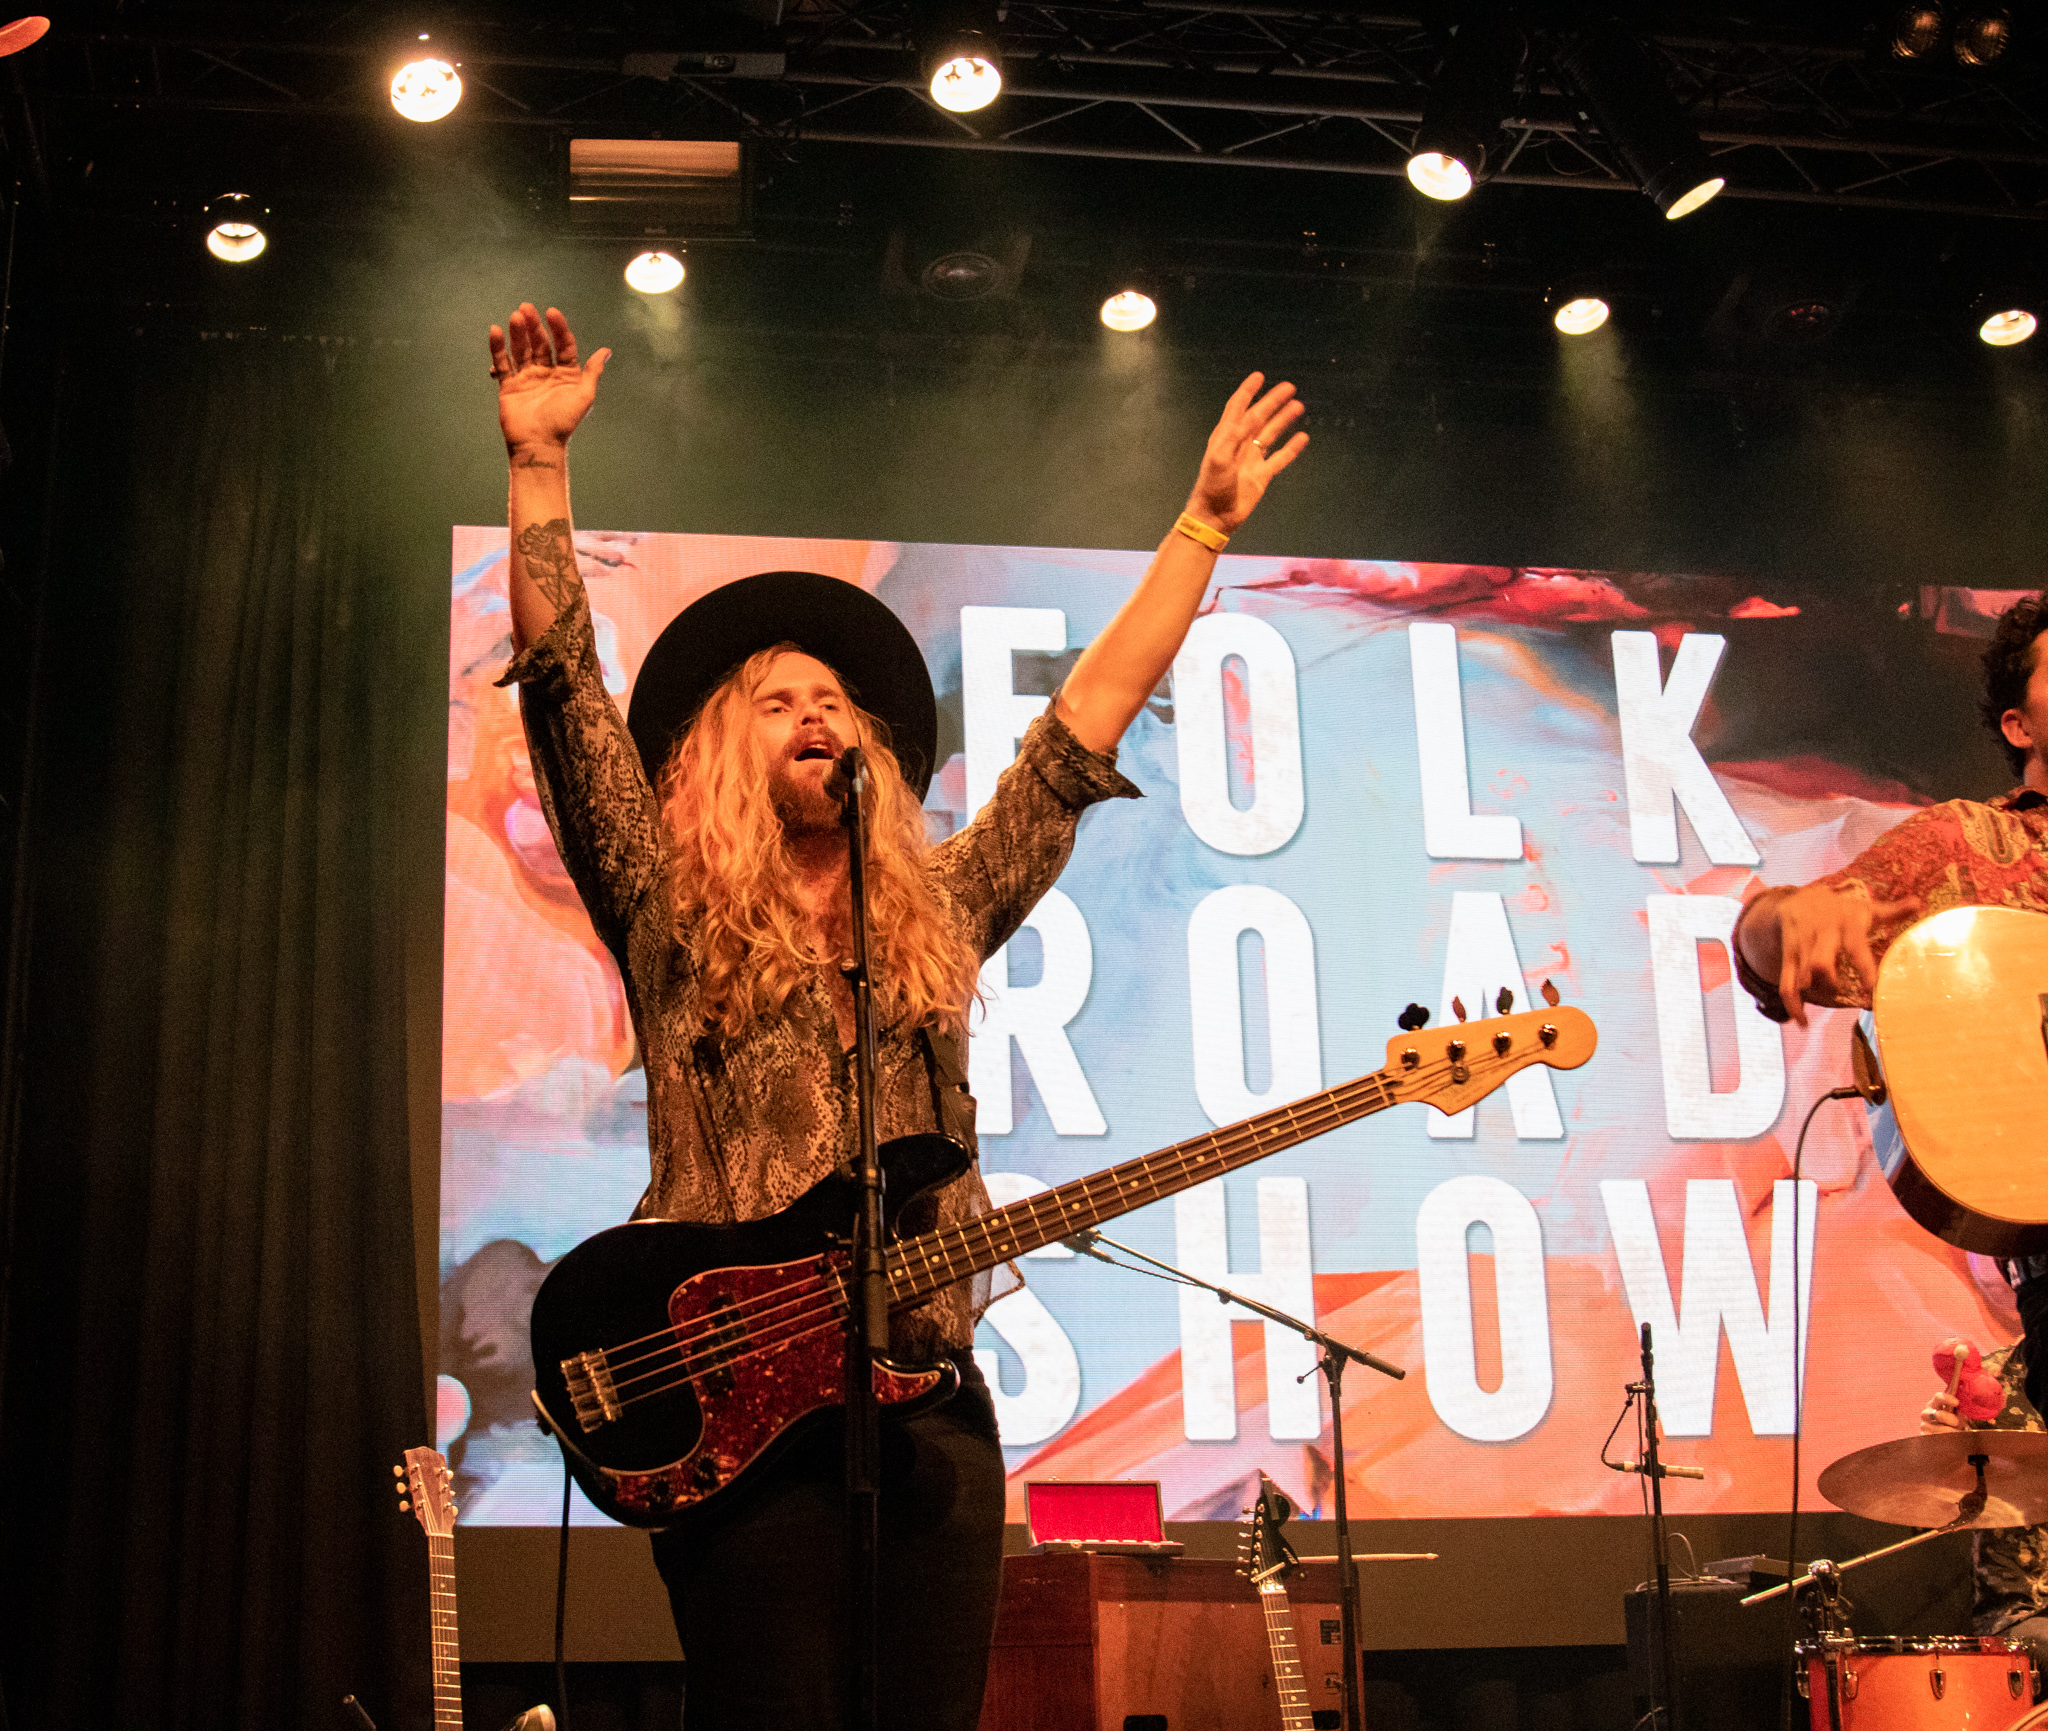 FolfRoadShow-QFactory-Amsterdam_NL-20191114-SylviaWijnands-007